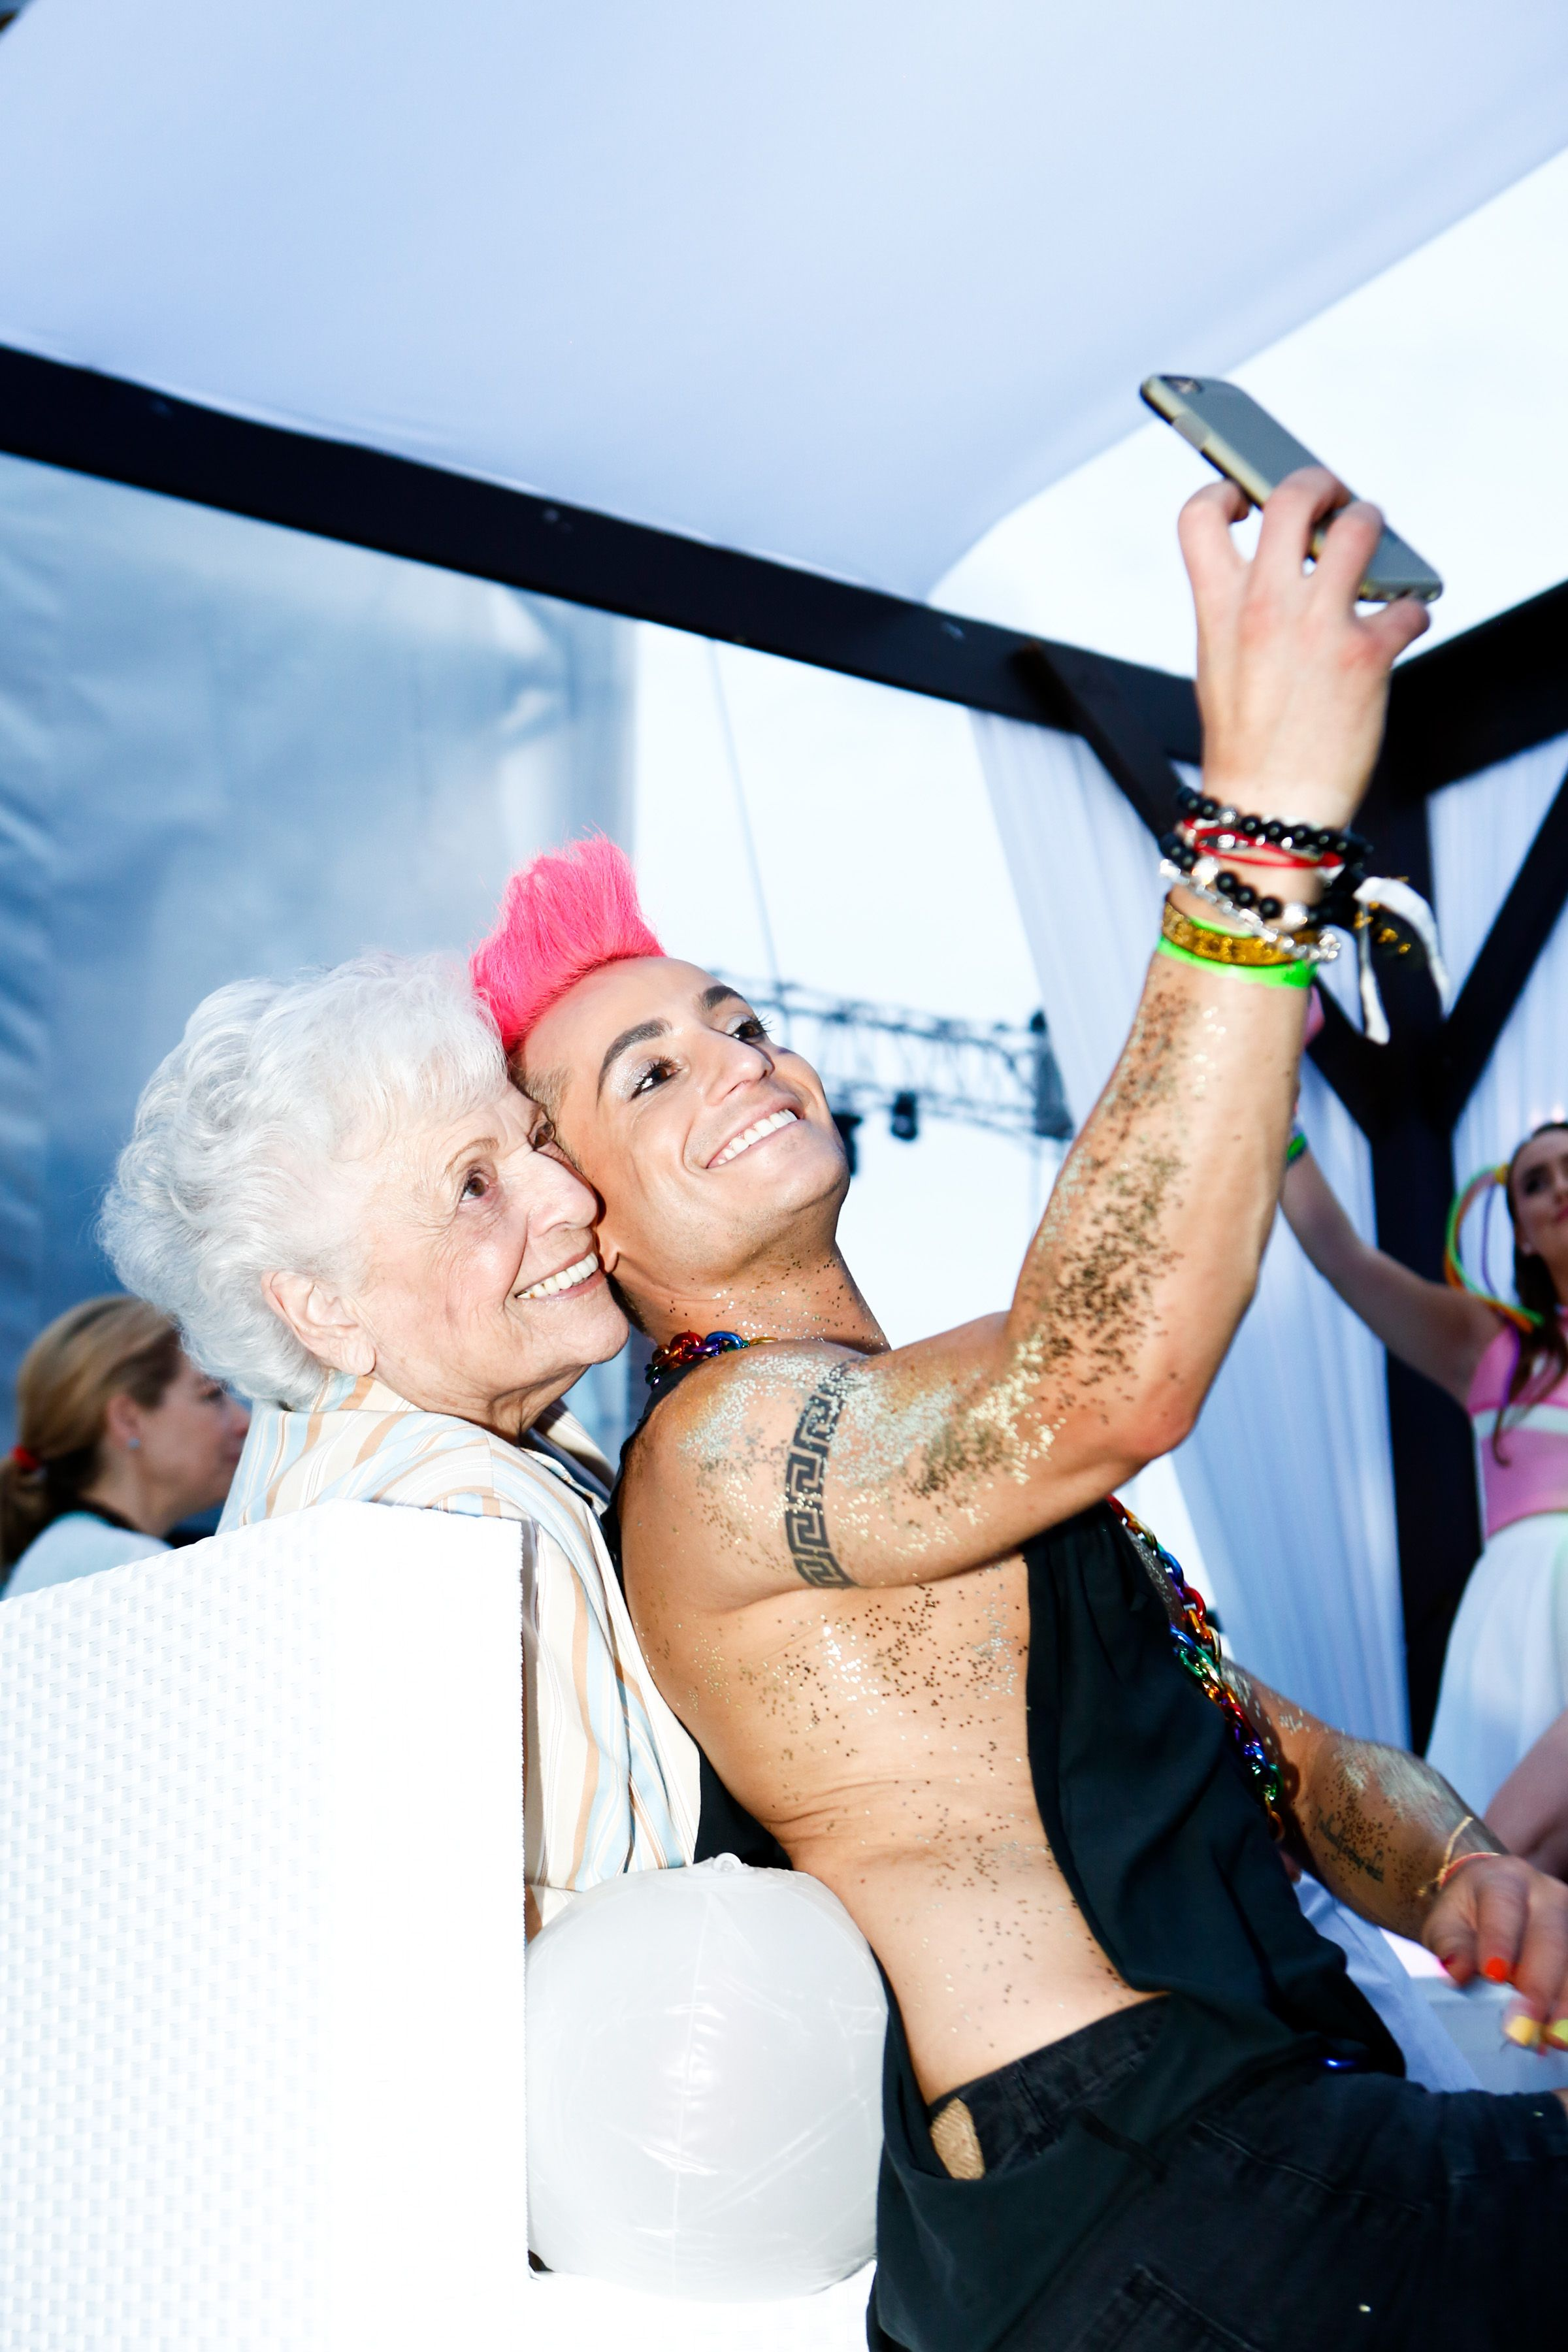 NYC Pride's 29th Annual Dance on the Pier on 6/28/2015